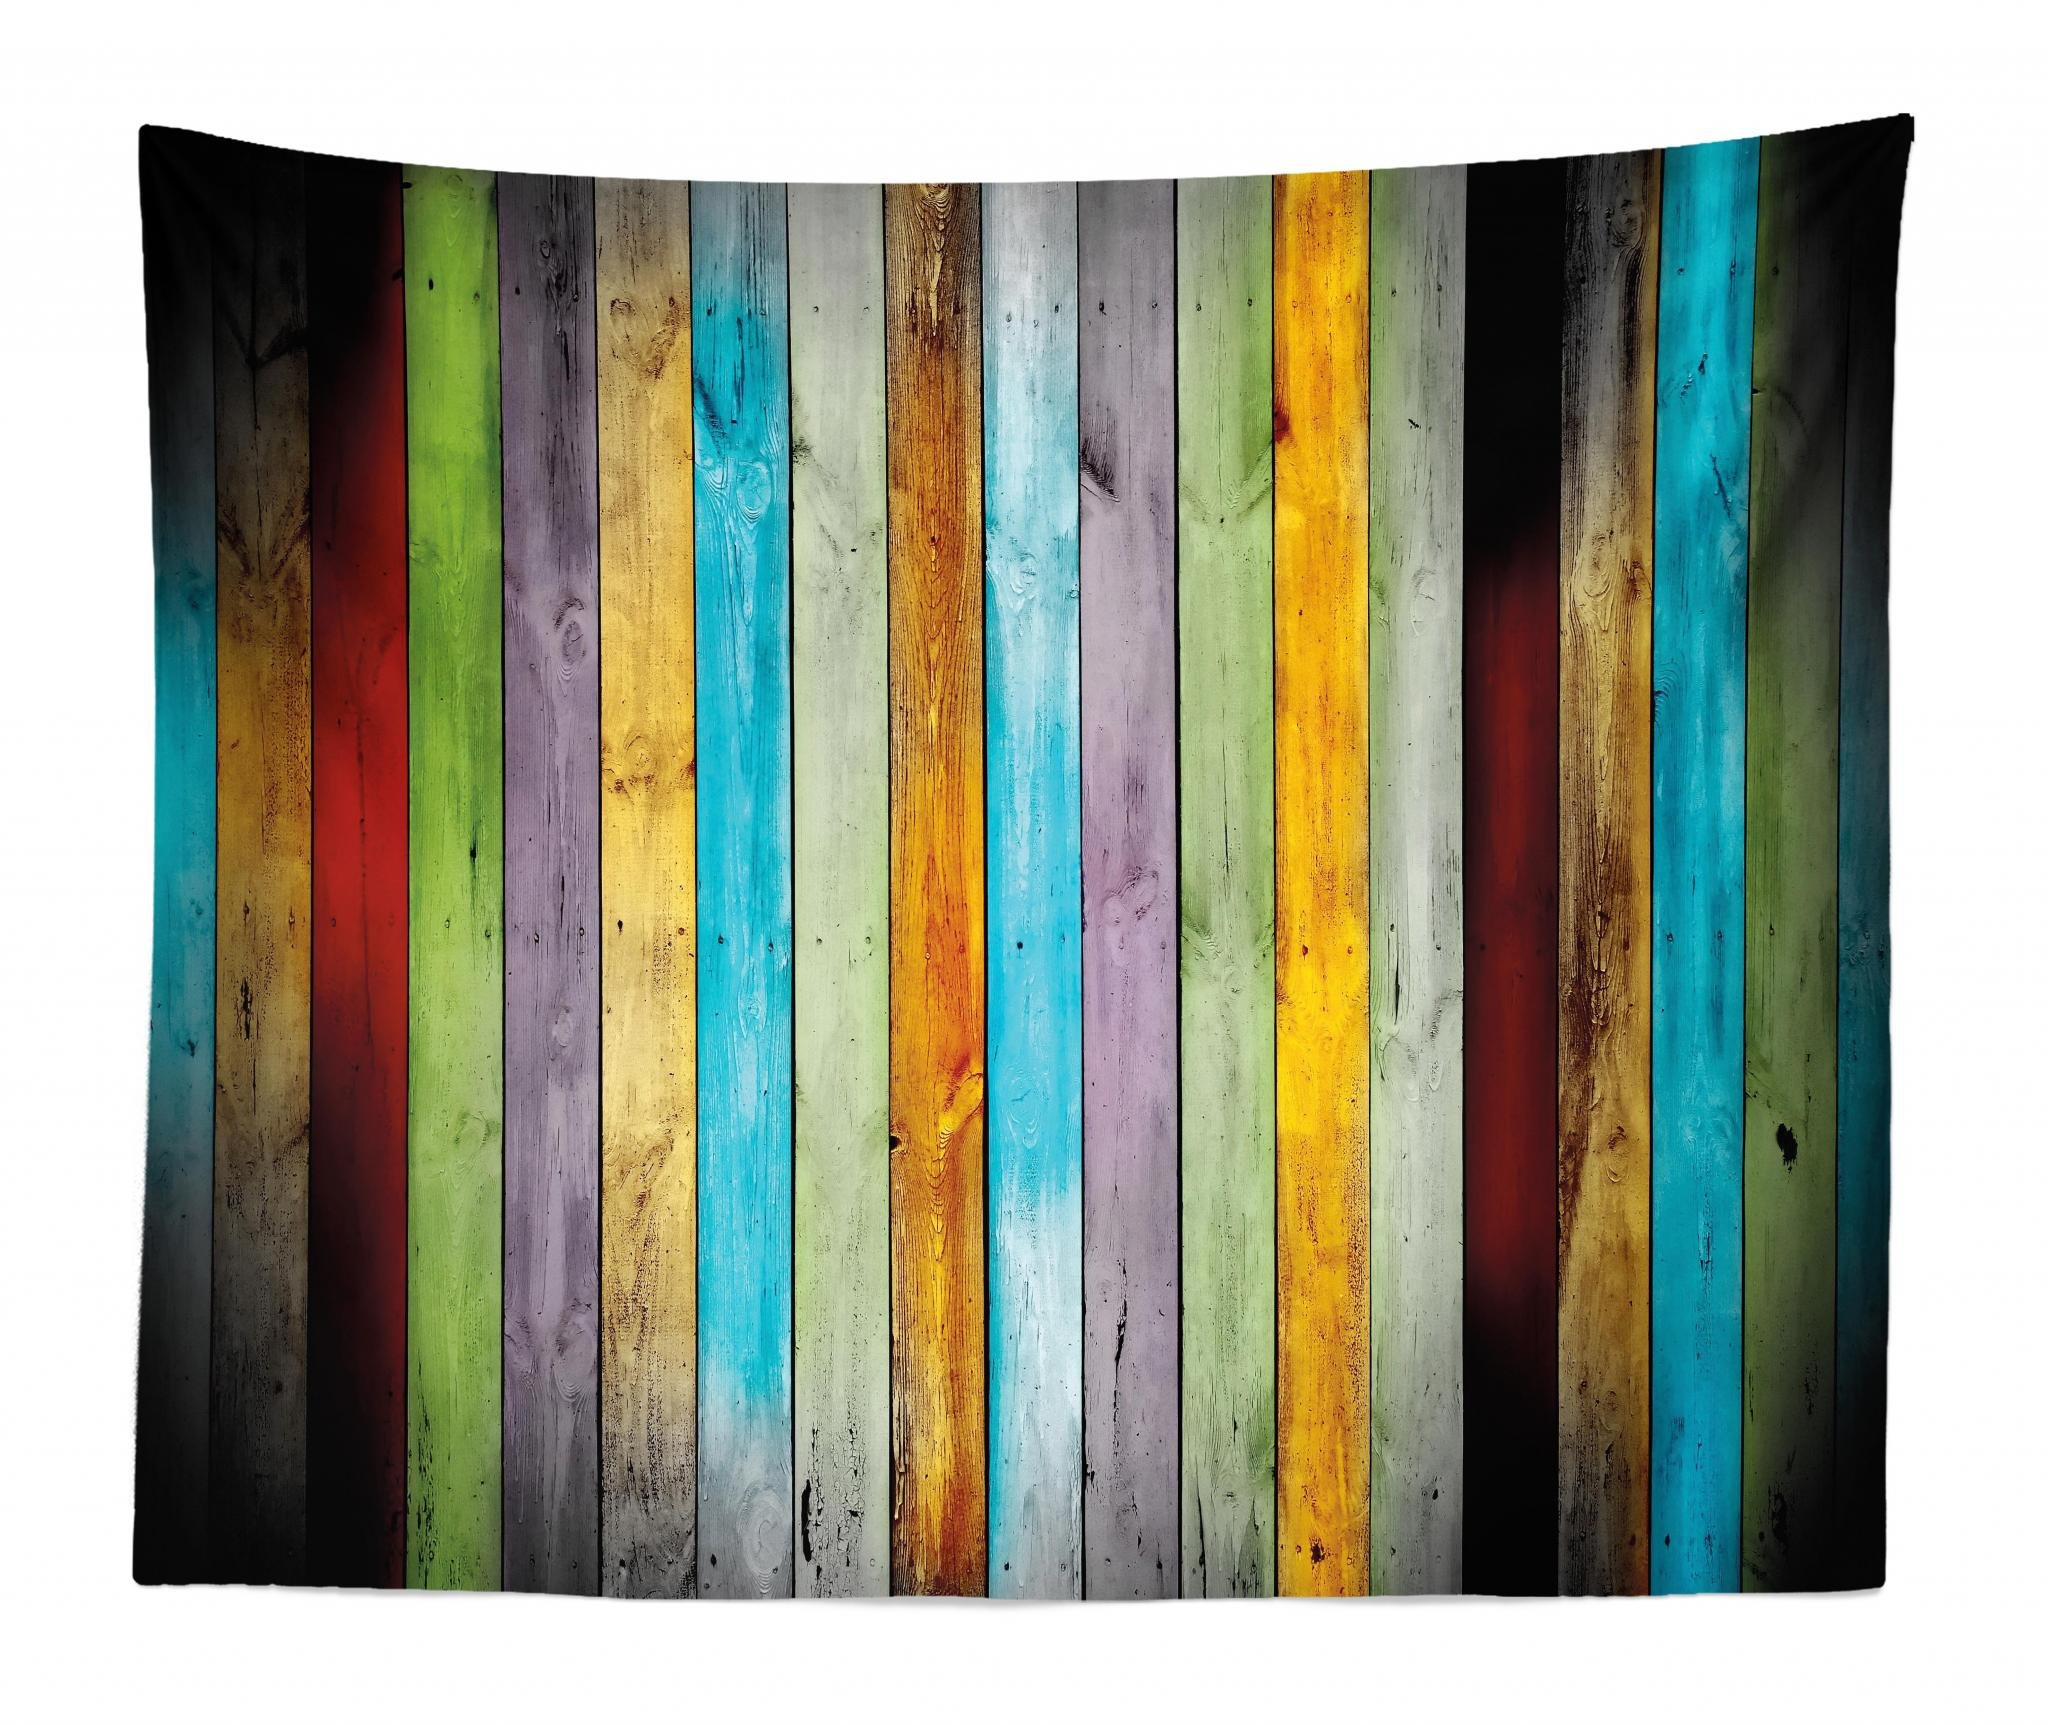 Lunarable Colorful Tapestry King Size, Vertical Wood Planks in Carpentry Oak Timber Rustic Country Life, Wall Hanging Bedspread Bed Cover Wall Decor, 104 W X 88 L Inches, Multicolor